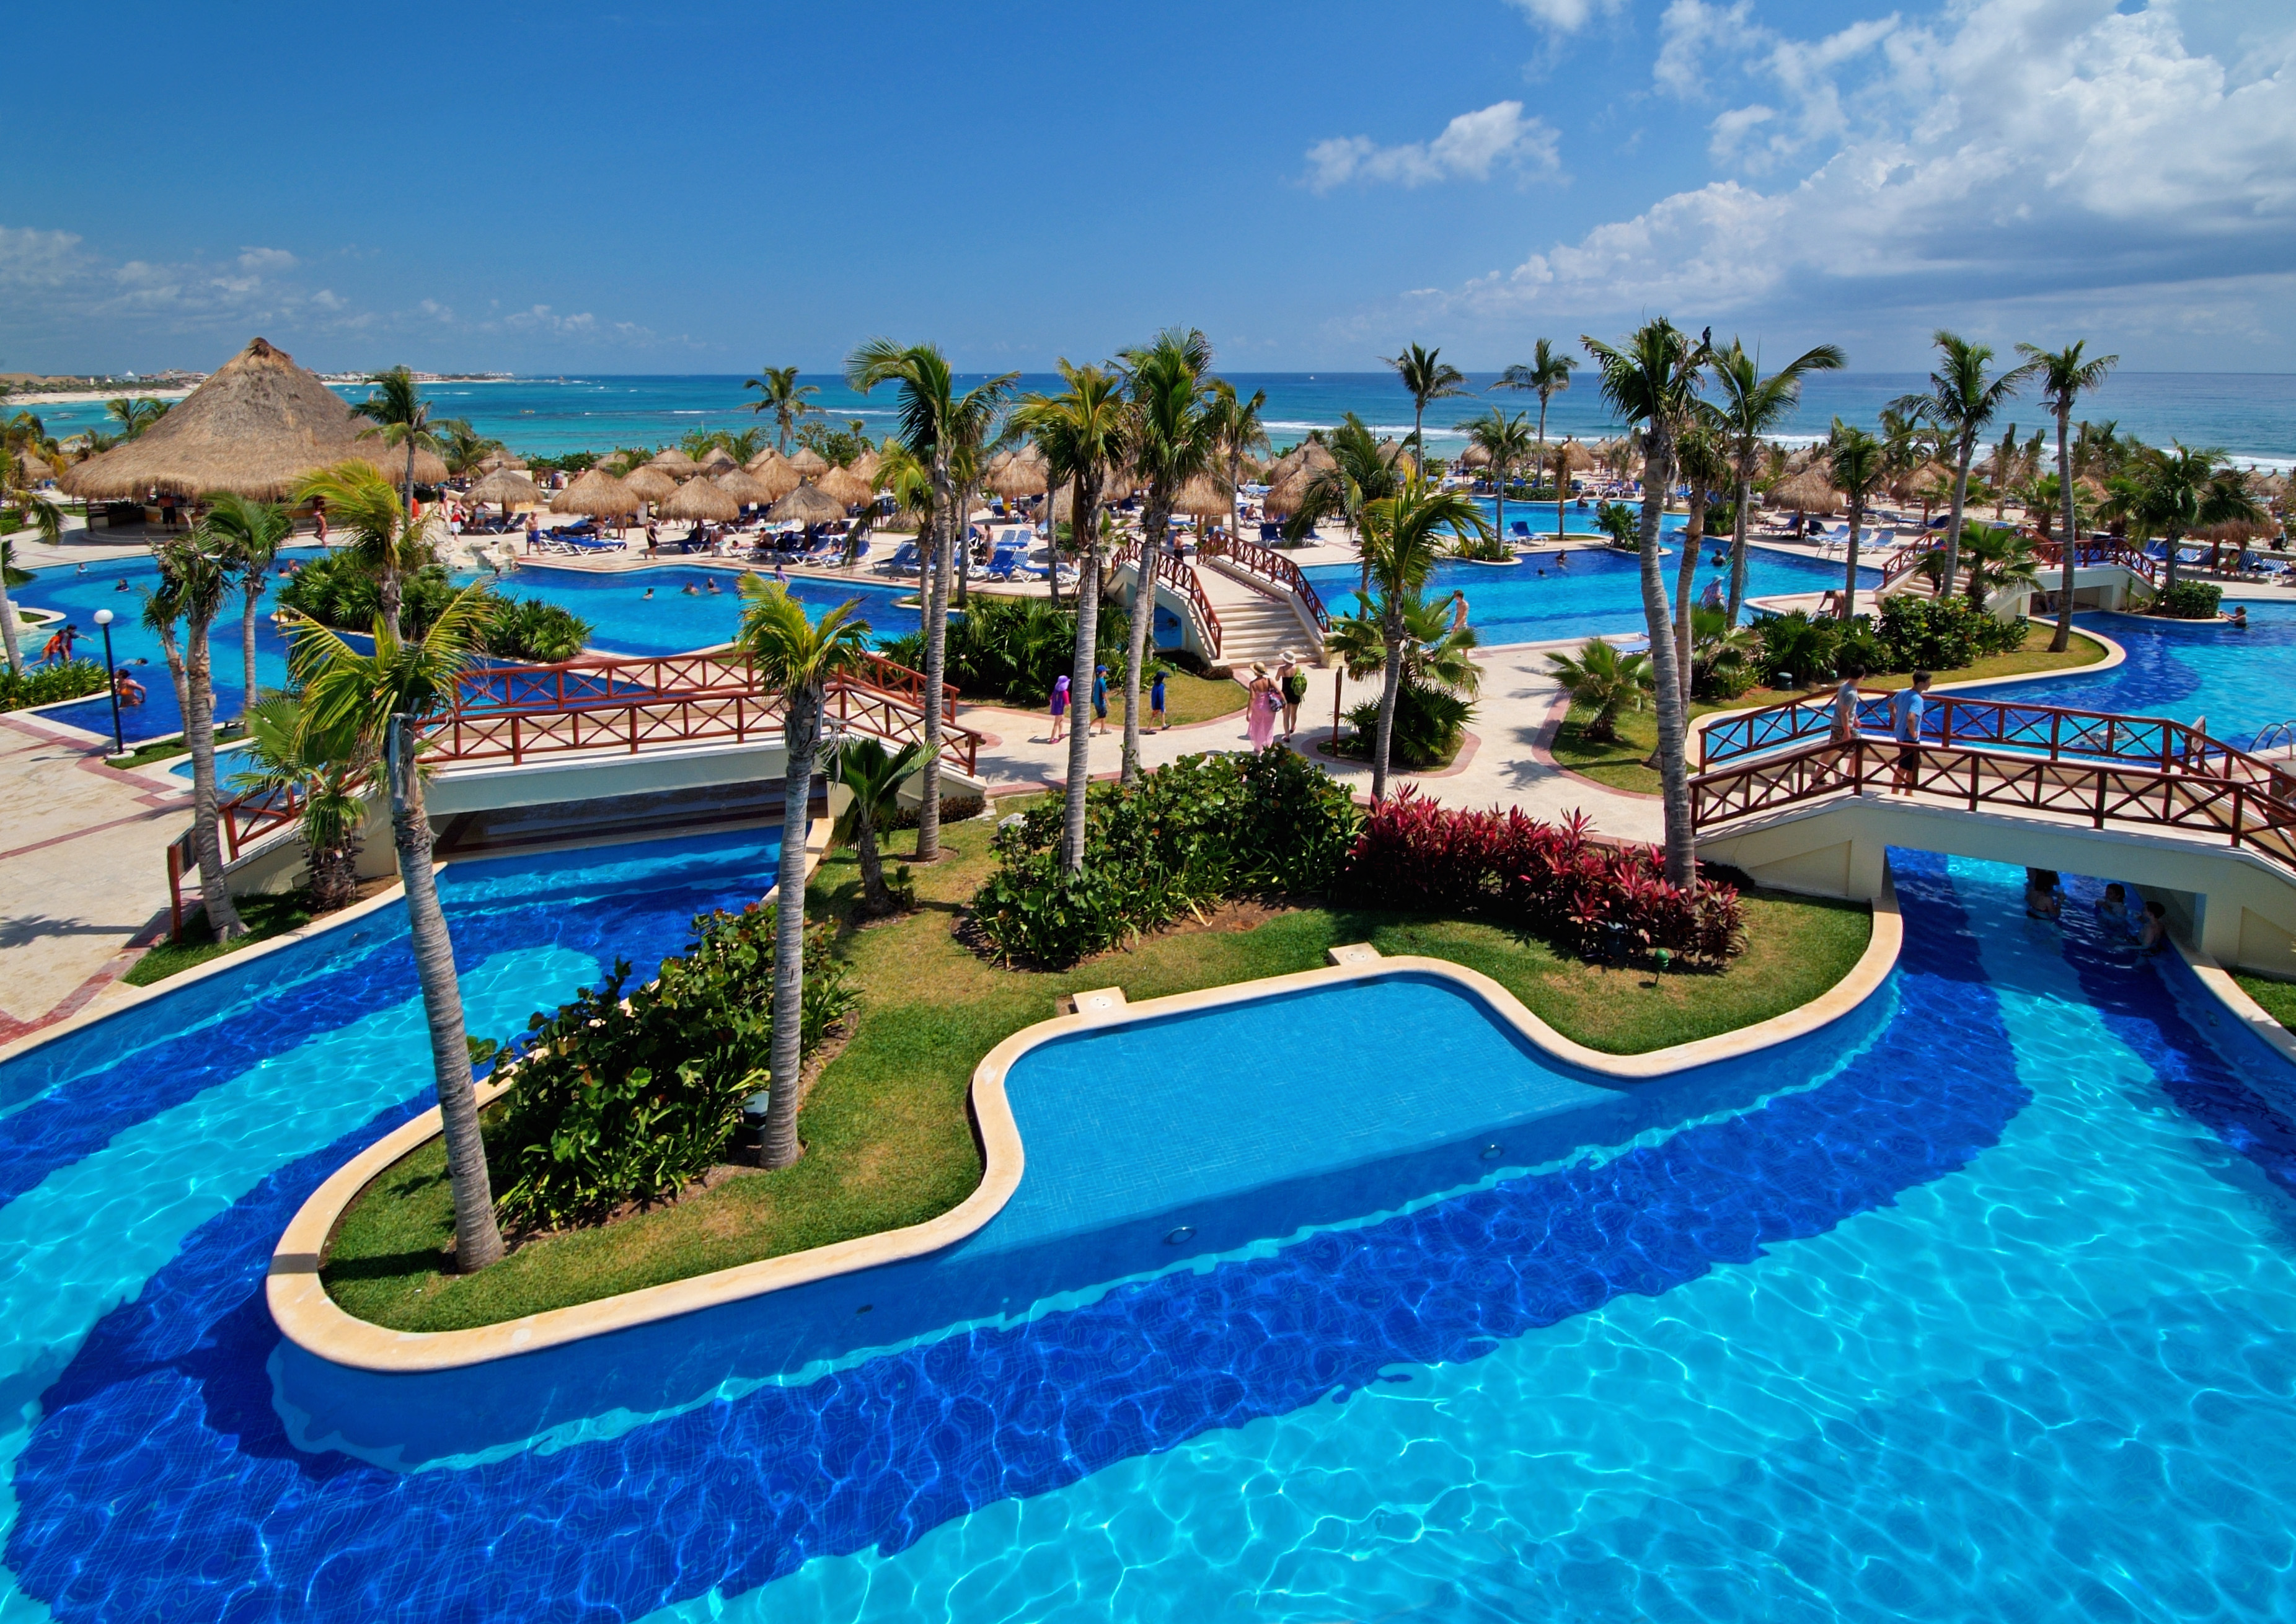 bahia principe resorts paradise in the caribbean and mexico